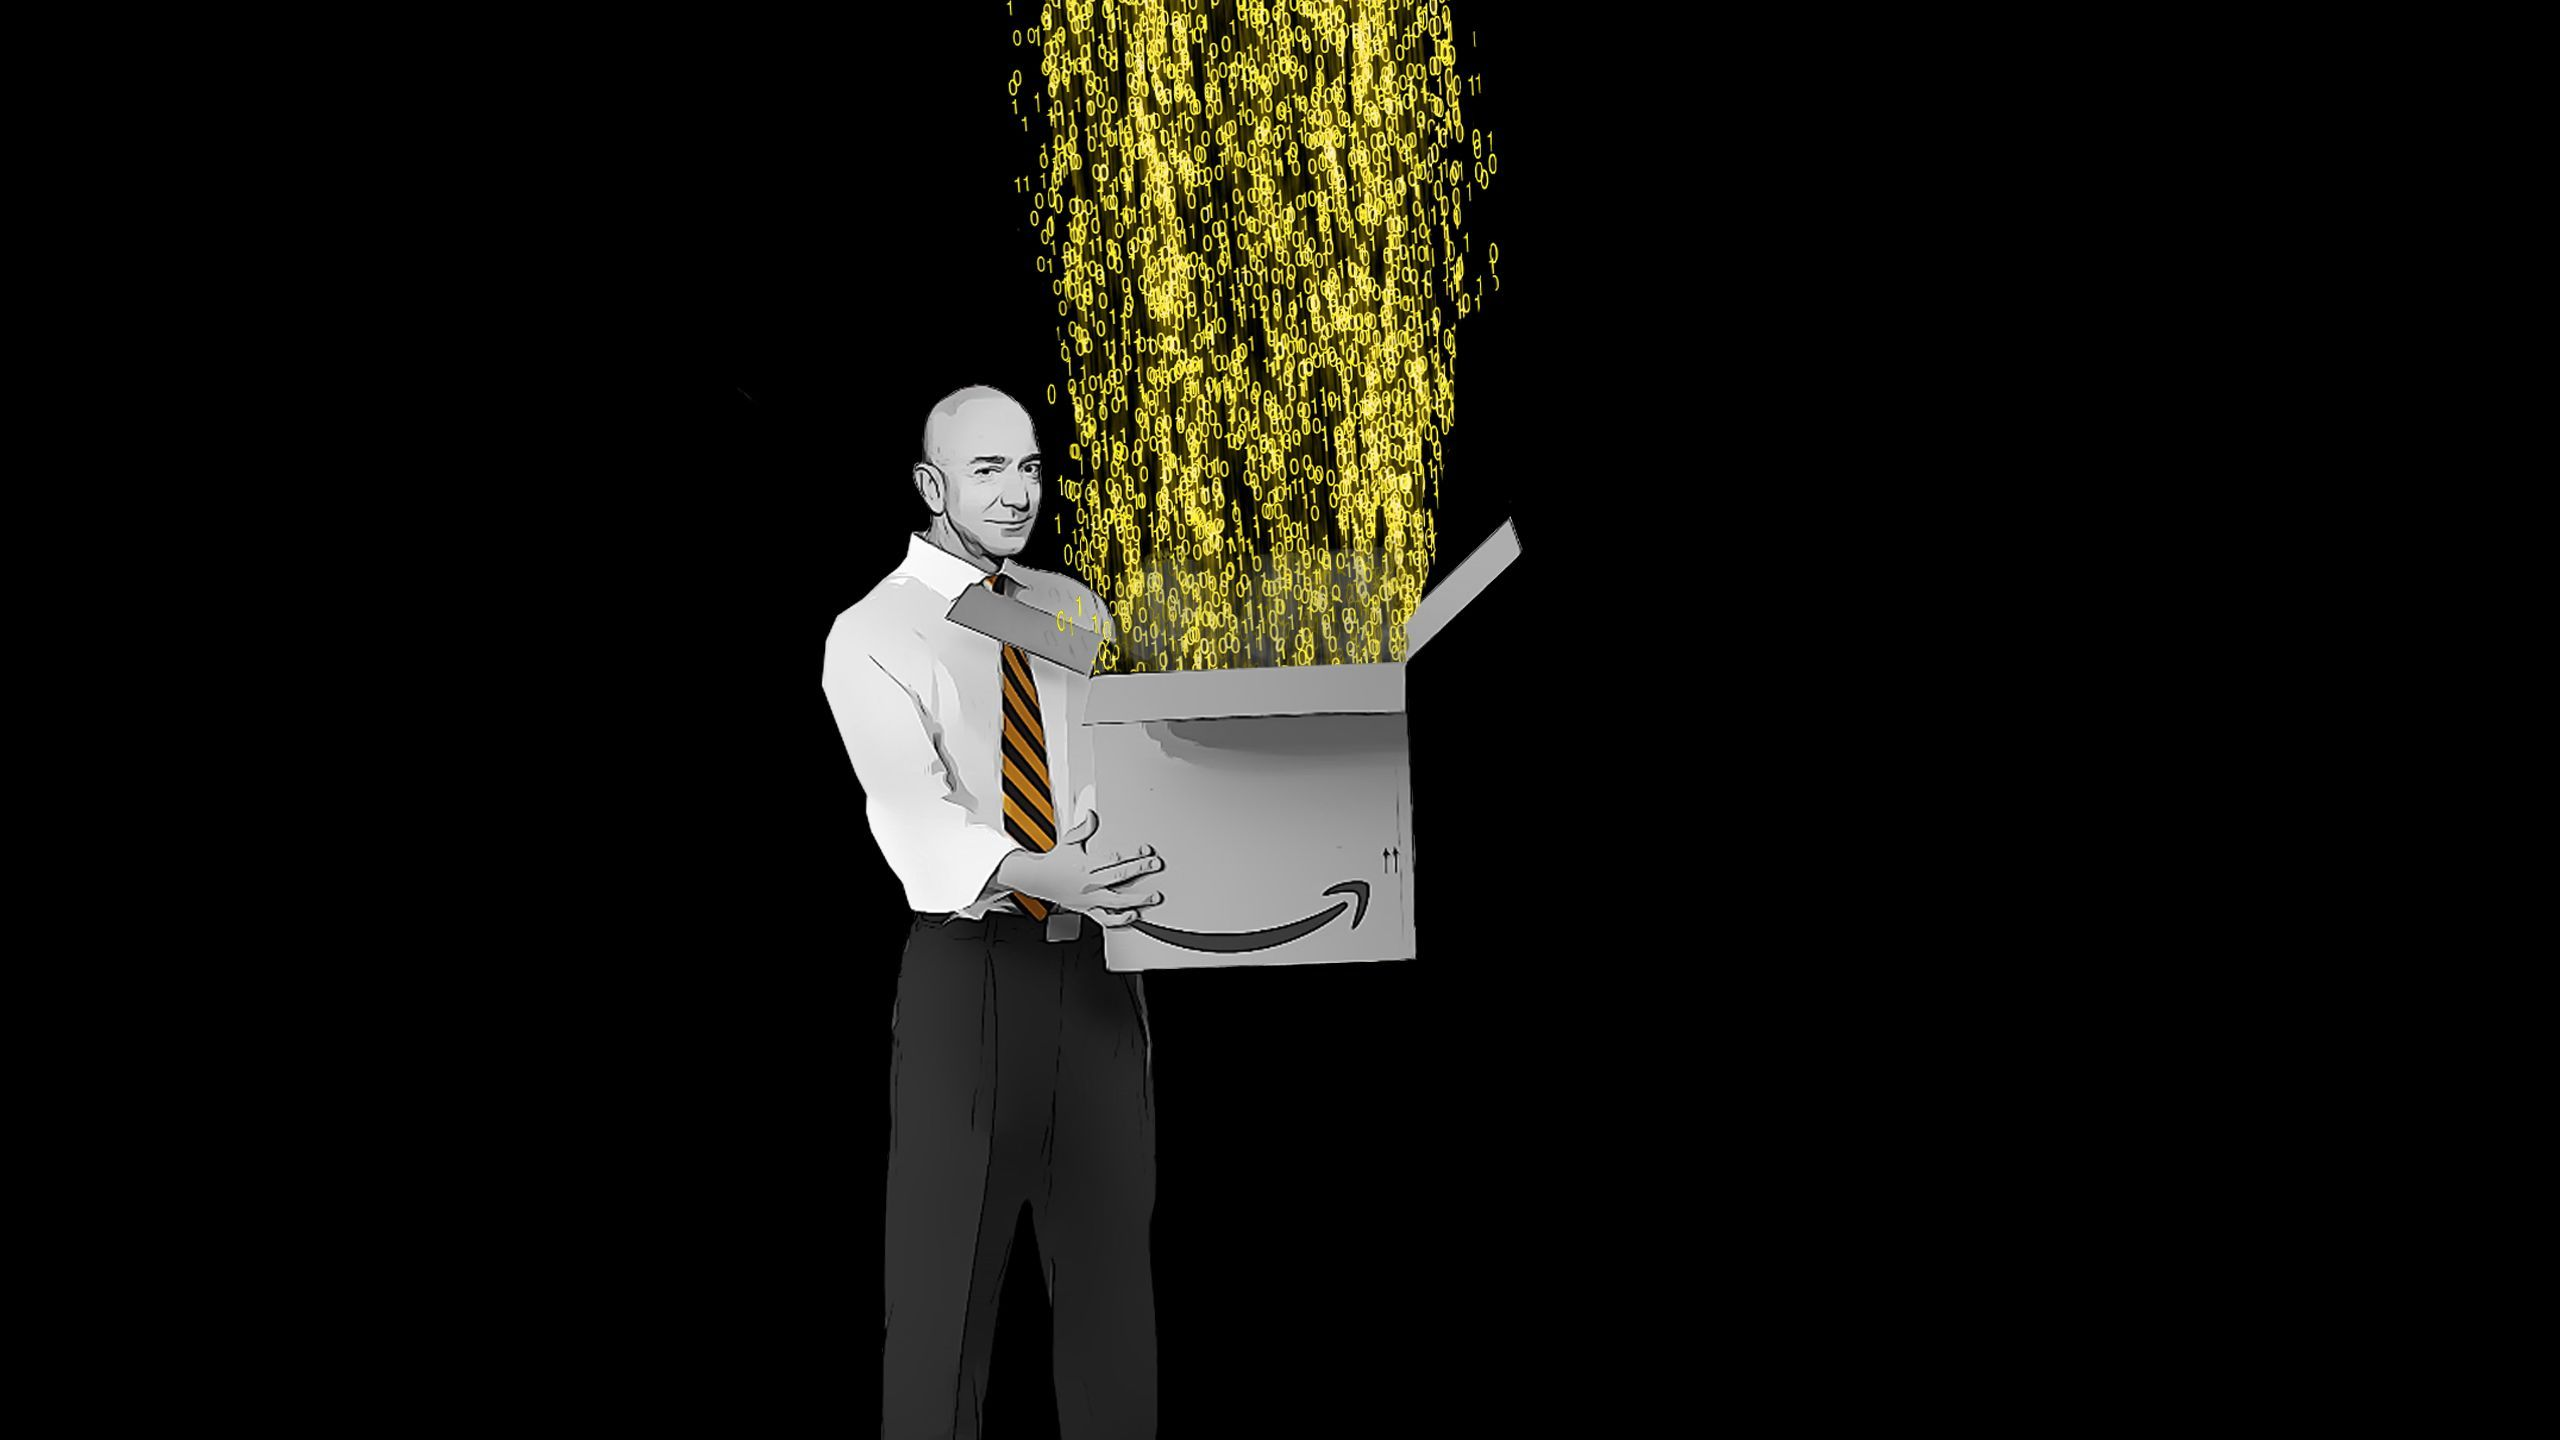 Amazon: How Bezos built his data machine